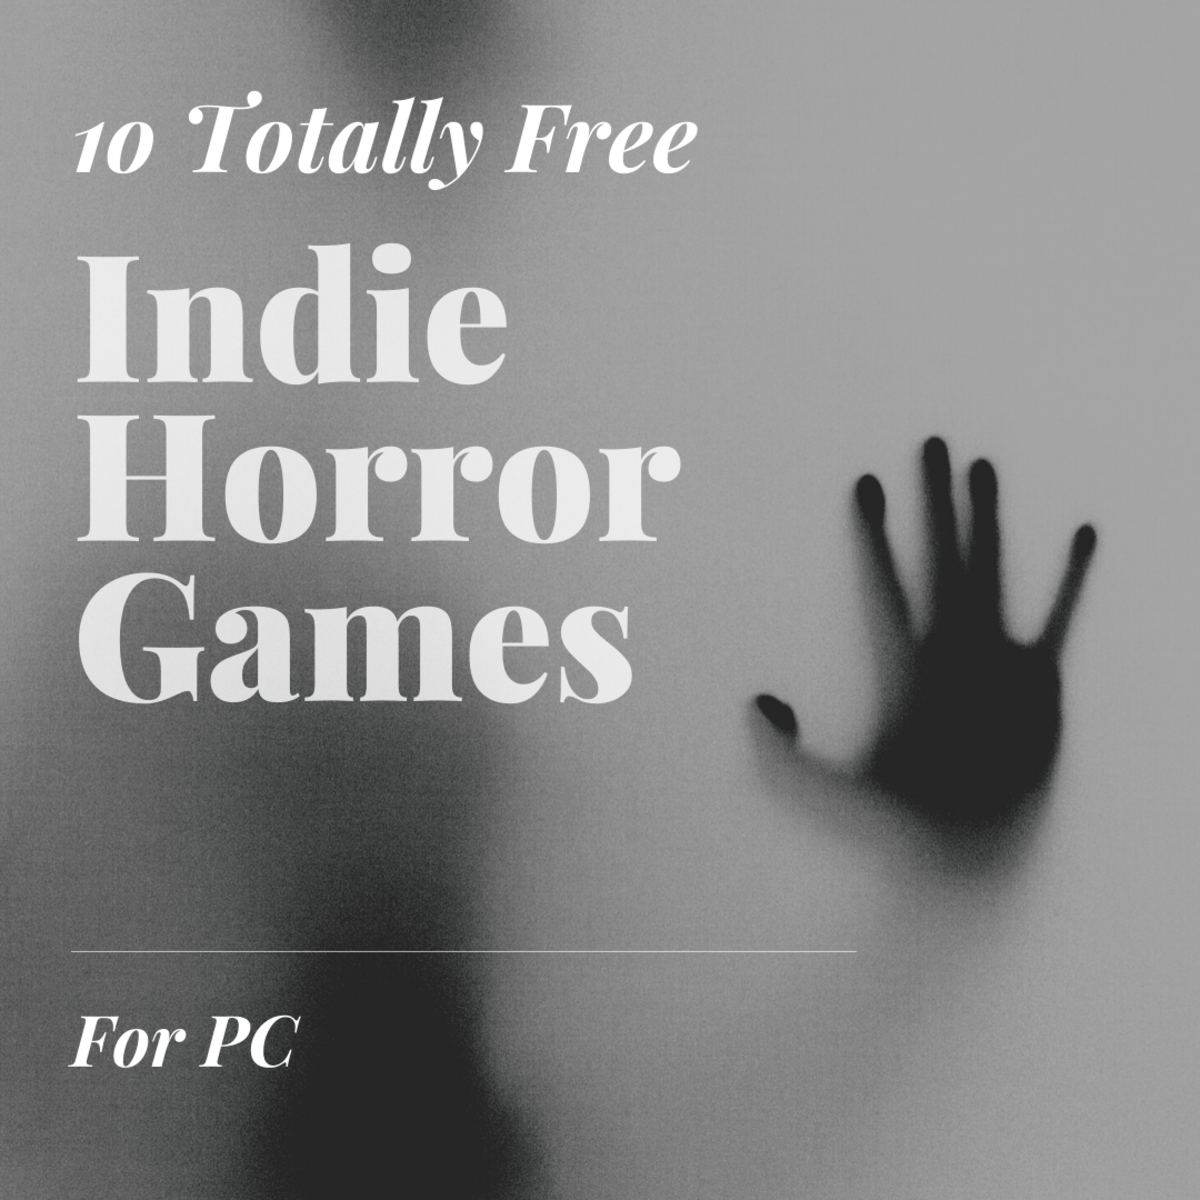 10 Totally Free Indie Horror Games for PC